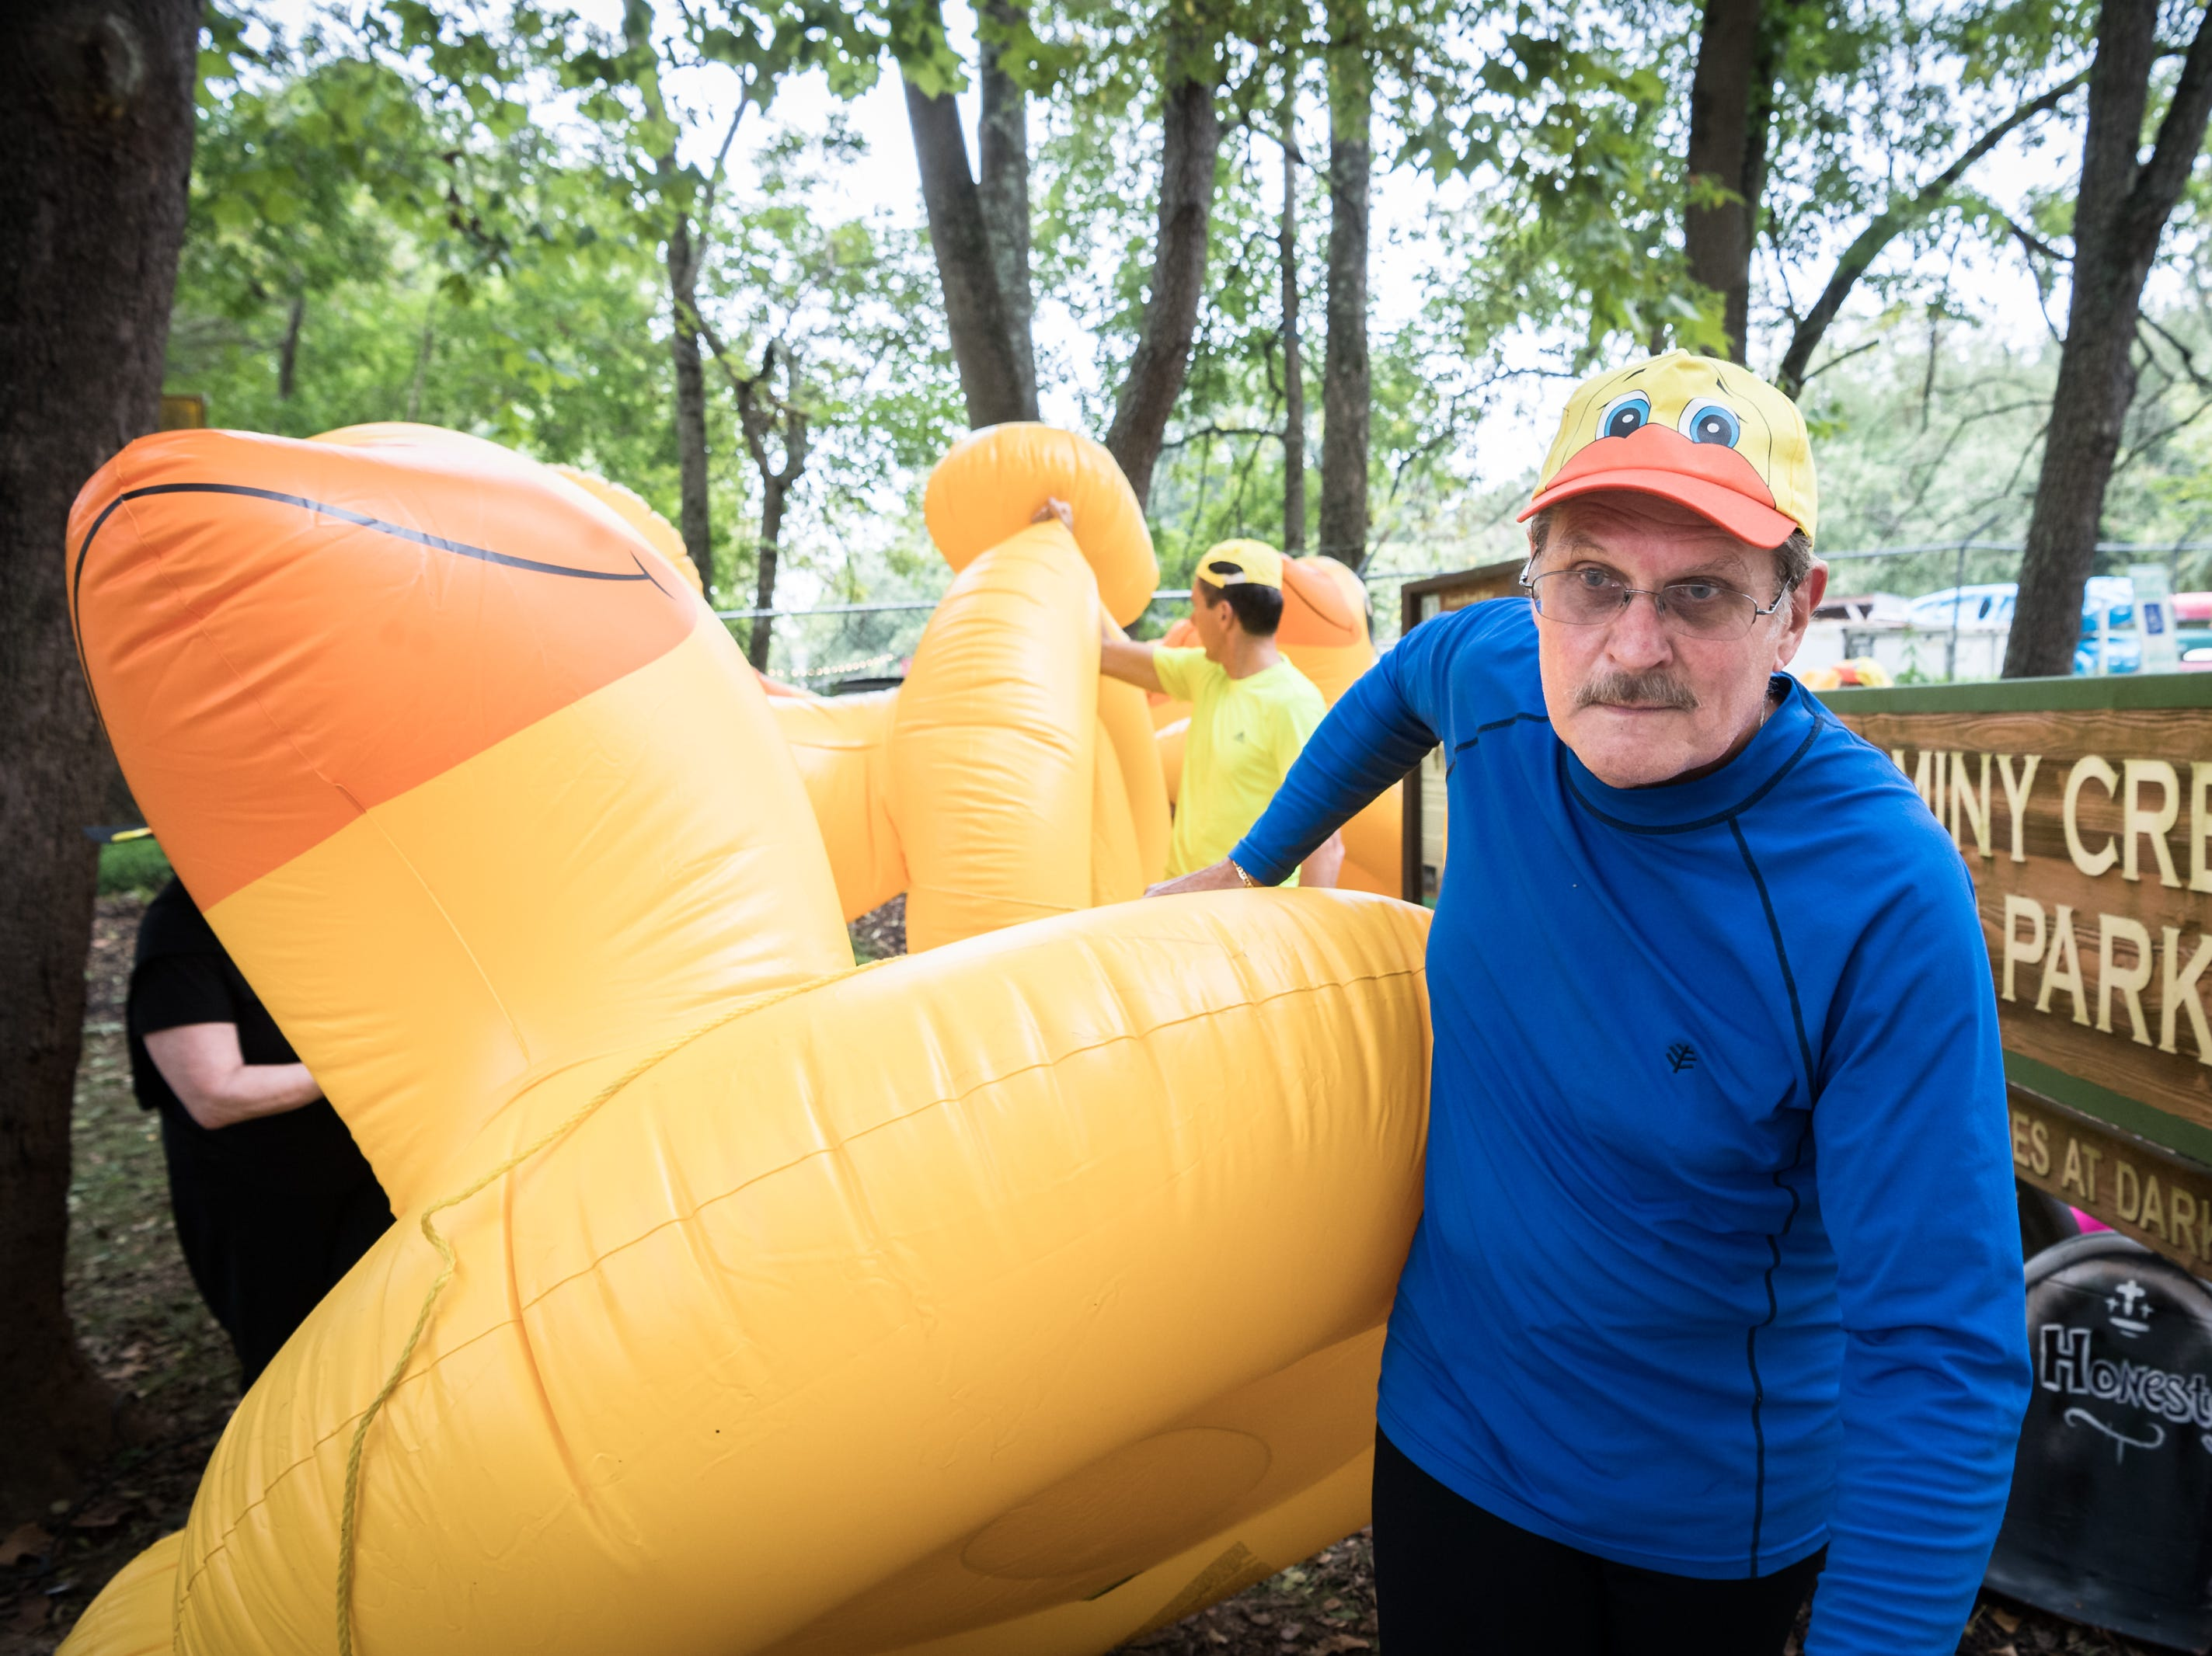 """John Ward, of the """"Just Ducky"""" Anything that Floats parade team, helps carry one of several duck flotation devices to put in to the French Broad River at Hominy Creek River Park, Saturday, August 18, 2018. The parade ended at New Belgium Brewery where RiverLink's RiverFest took place."""